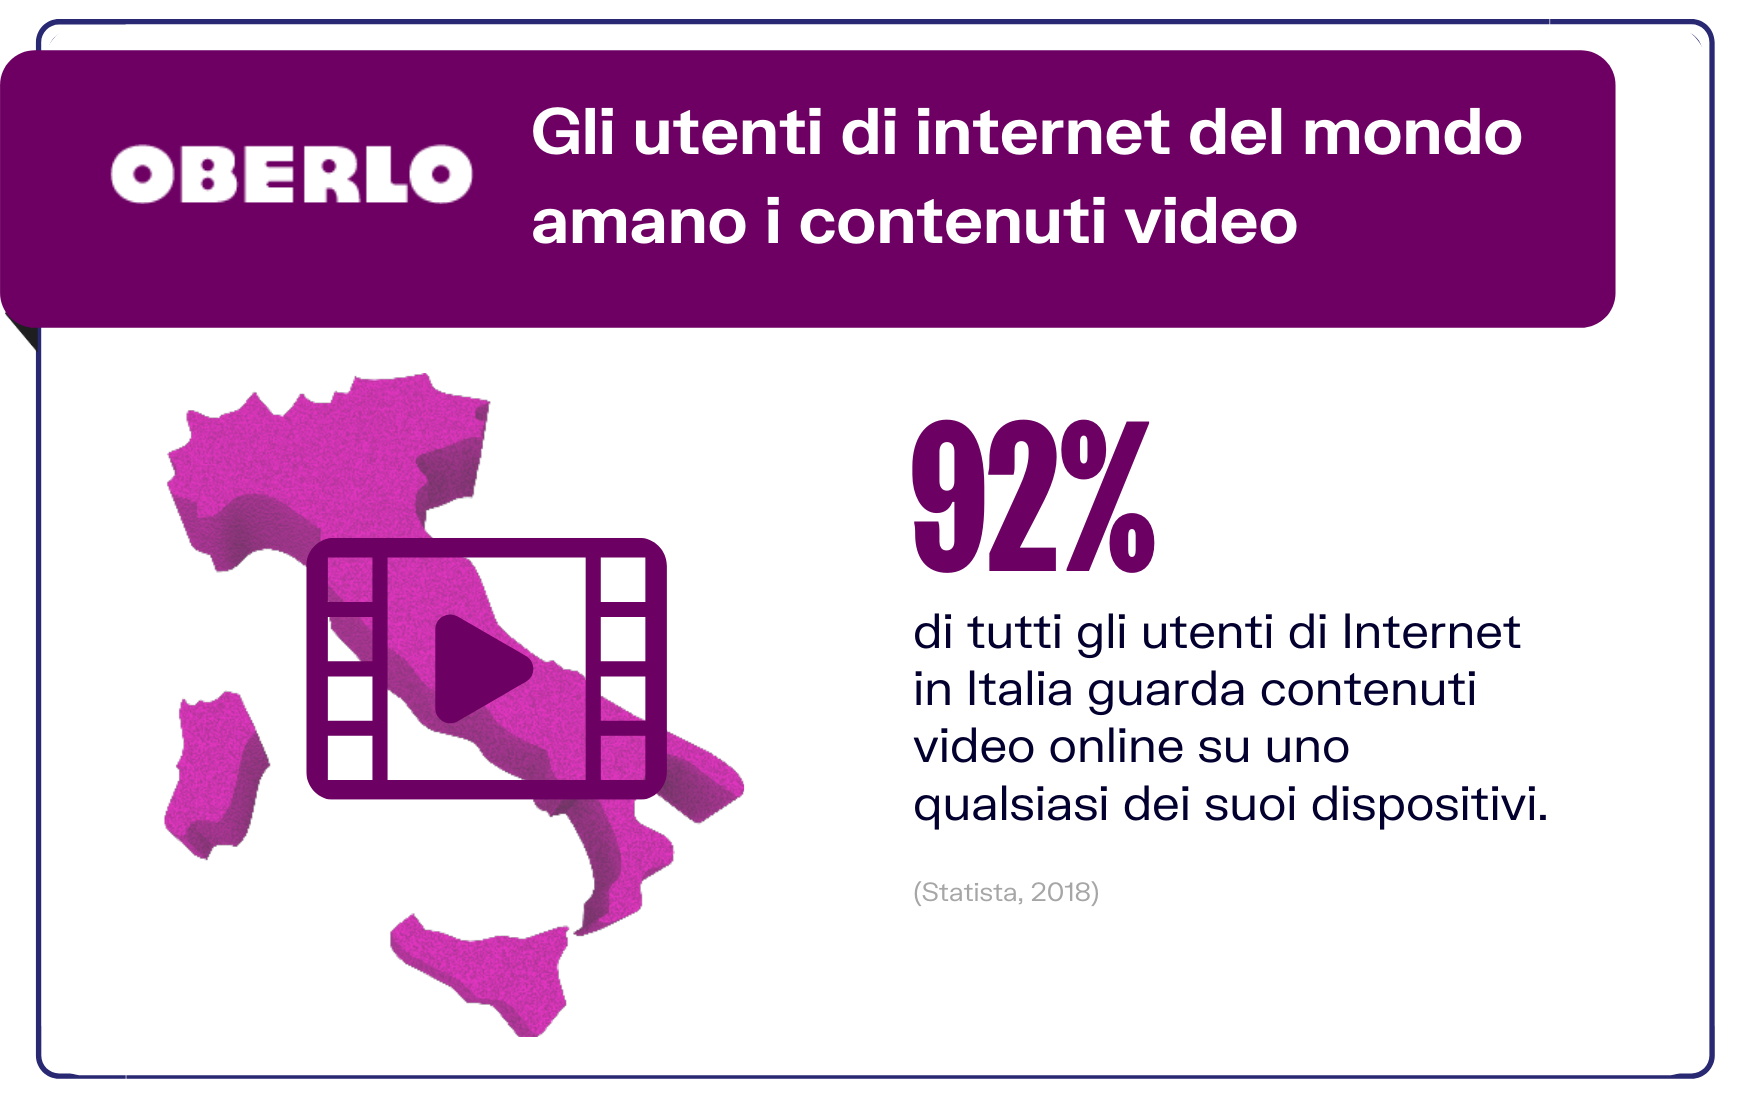 italiani guardano i video